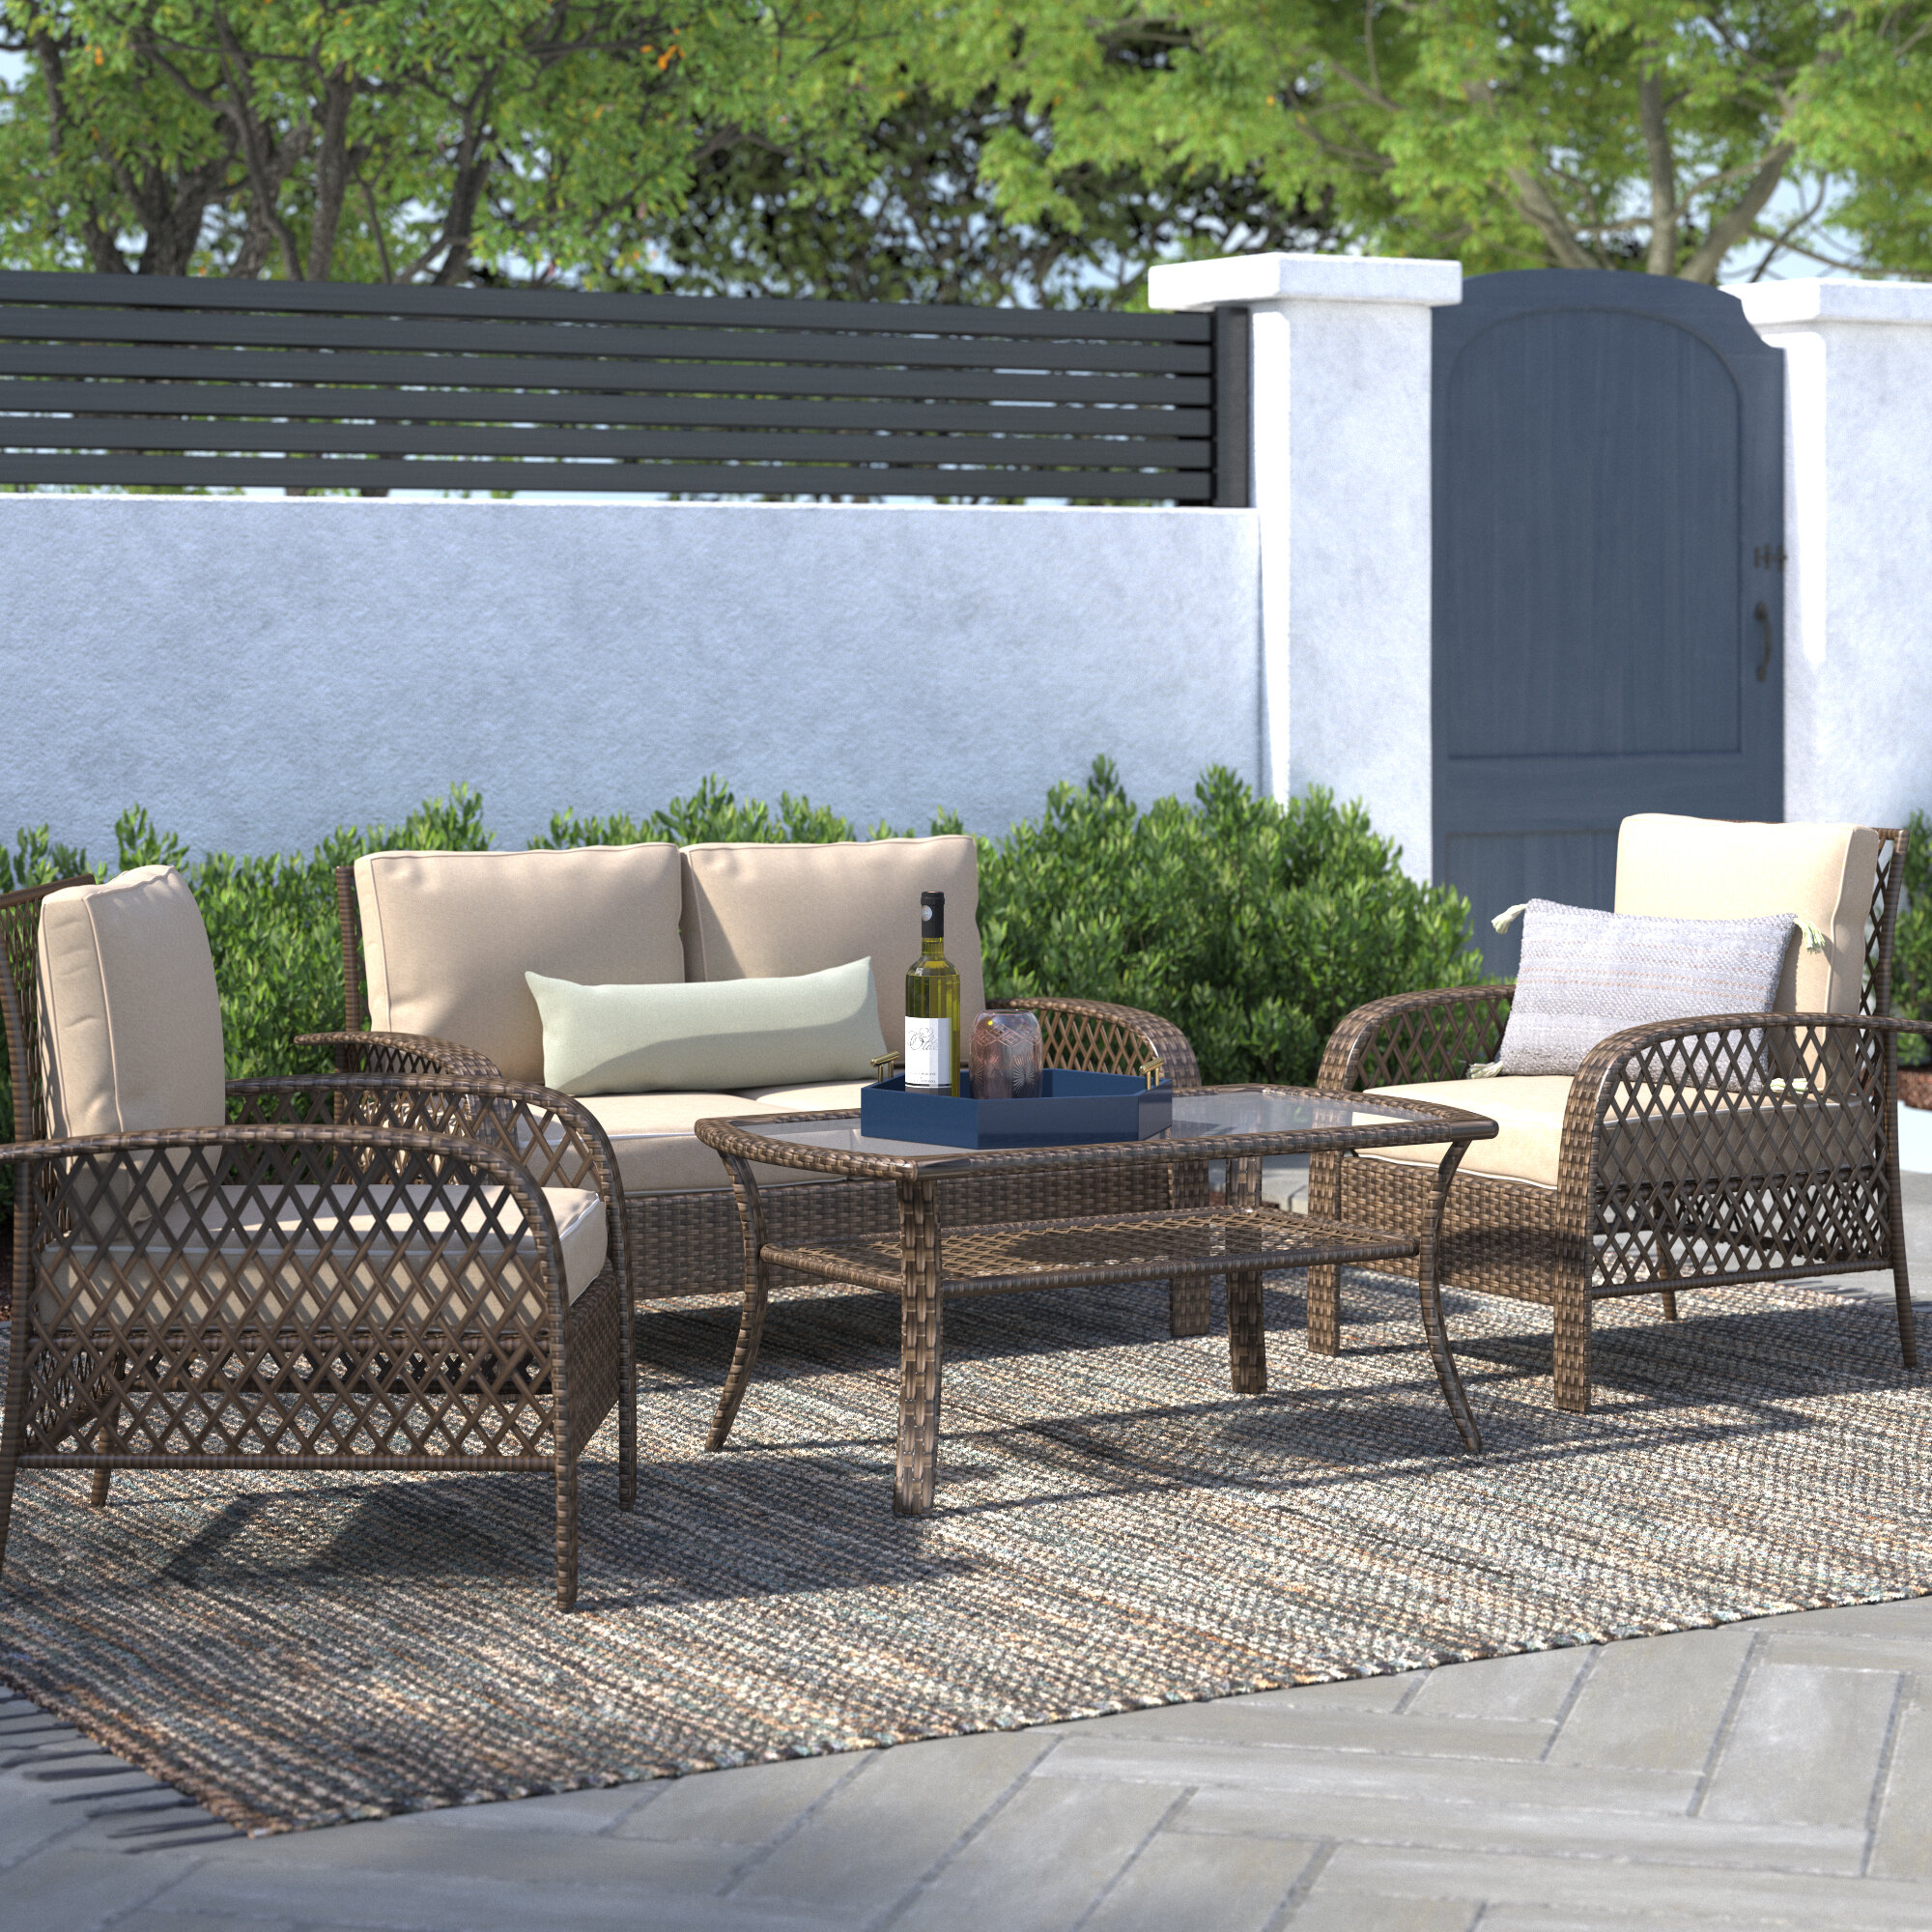 Beachcrest Home Tribeca 4 Piece Rattan Sofa Seating Group With Cushions Reviews Wayfair